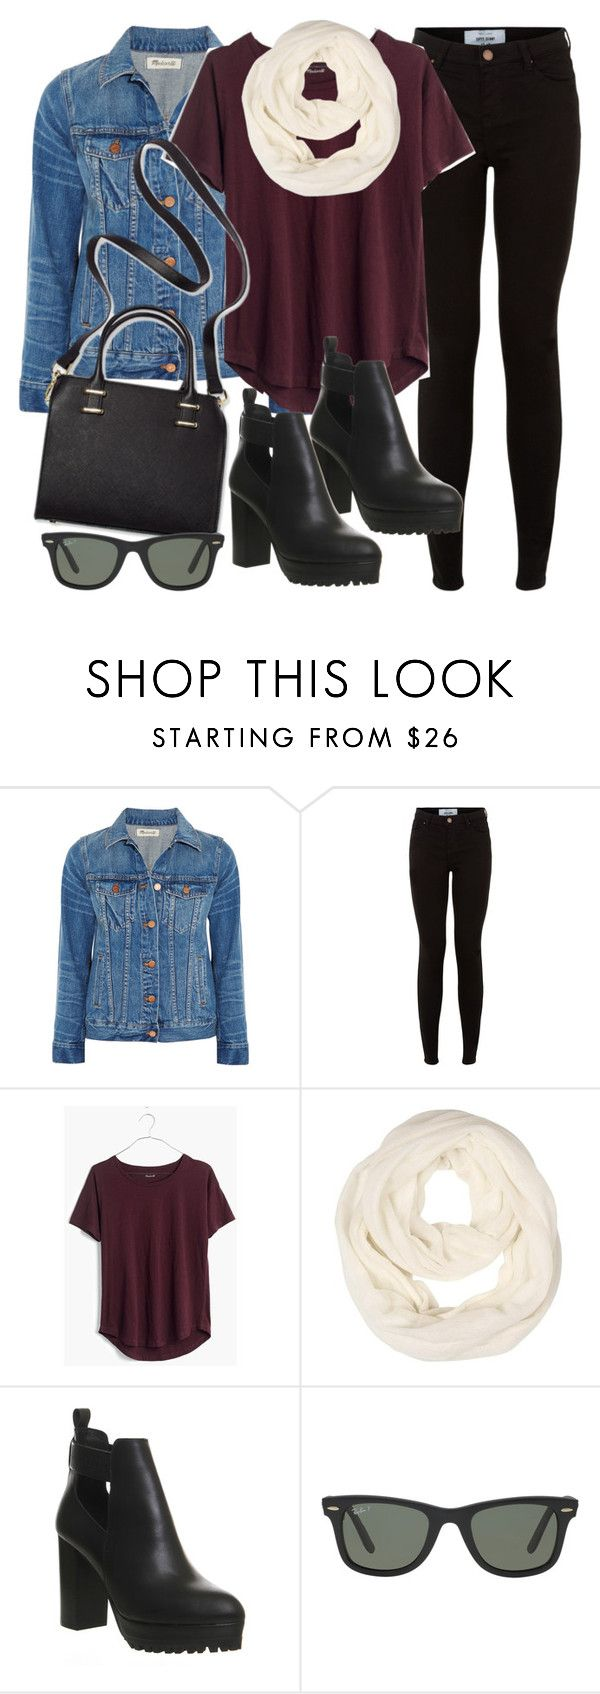 """""""Style #11083"""" by vany-alvarado ❤ liked on Polyvore featuring Madewell, New Look, Office, Humble Chic and Ray-Ban"""